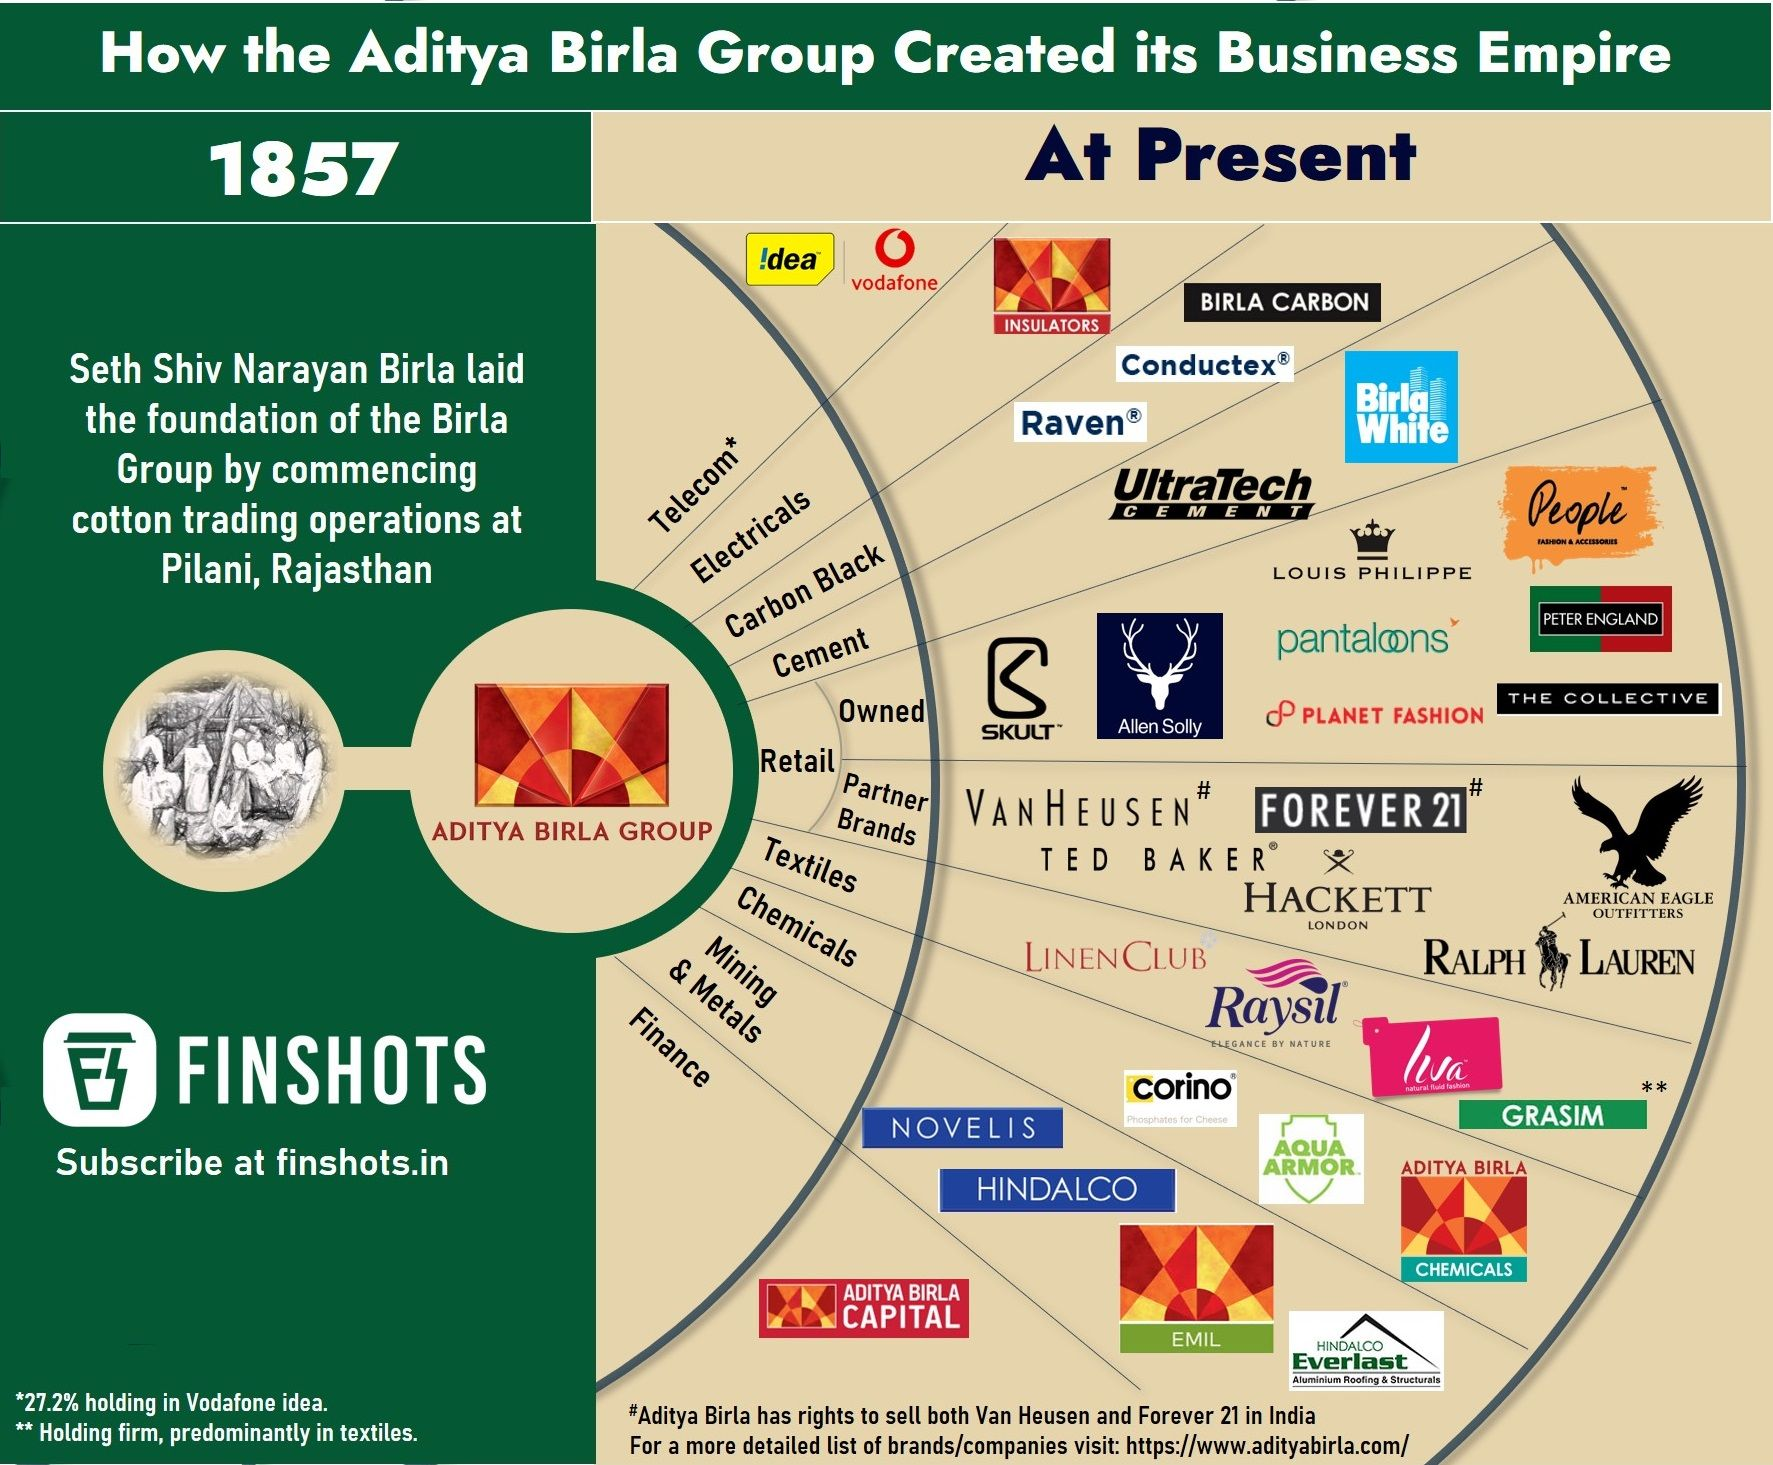 Aditya Birla Group's Business Empire